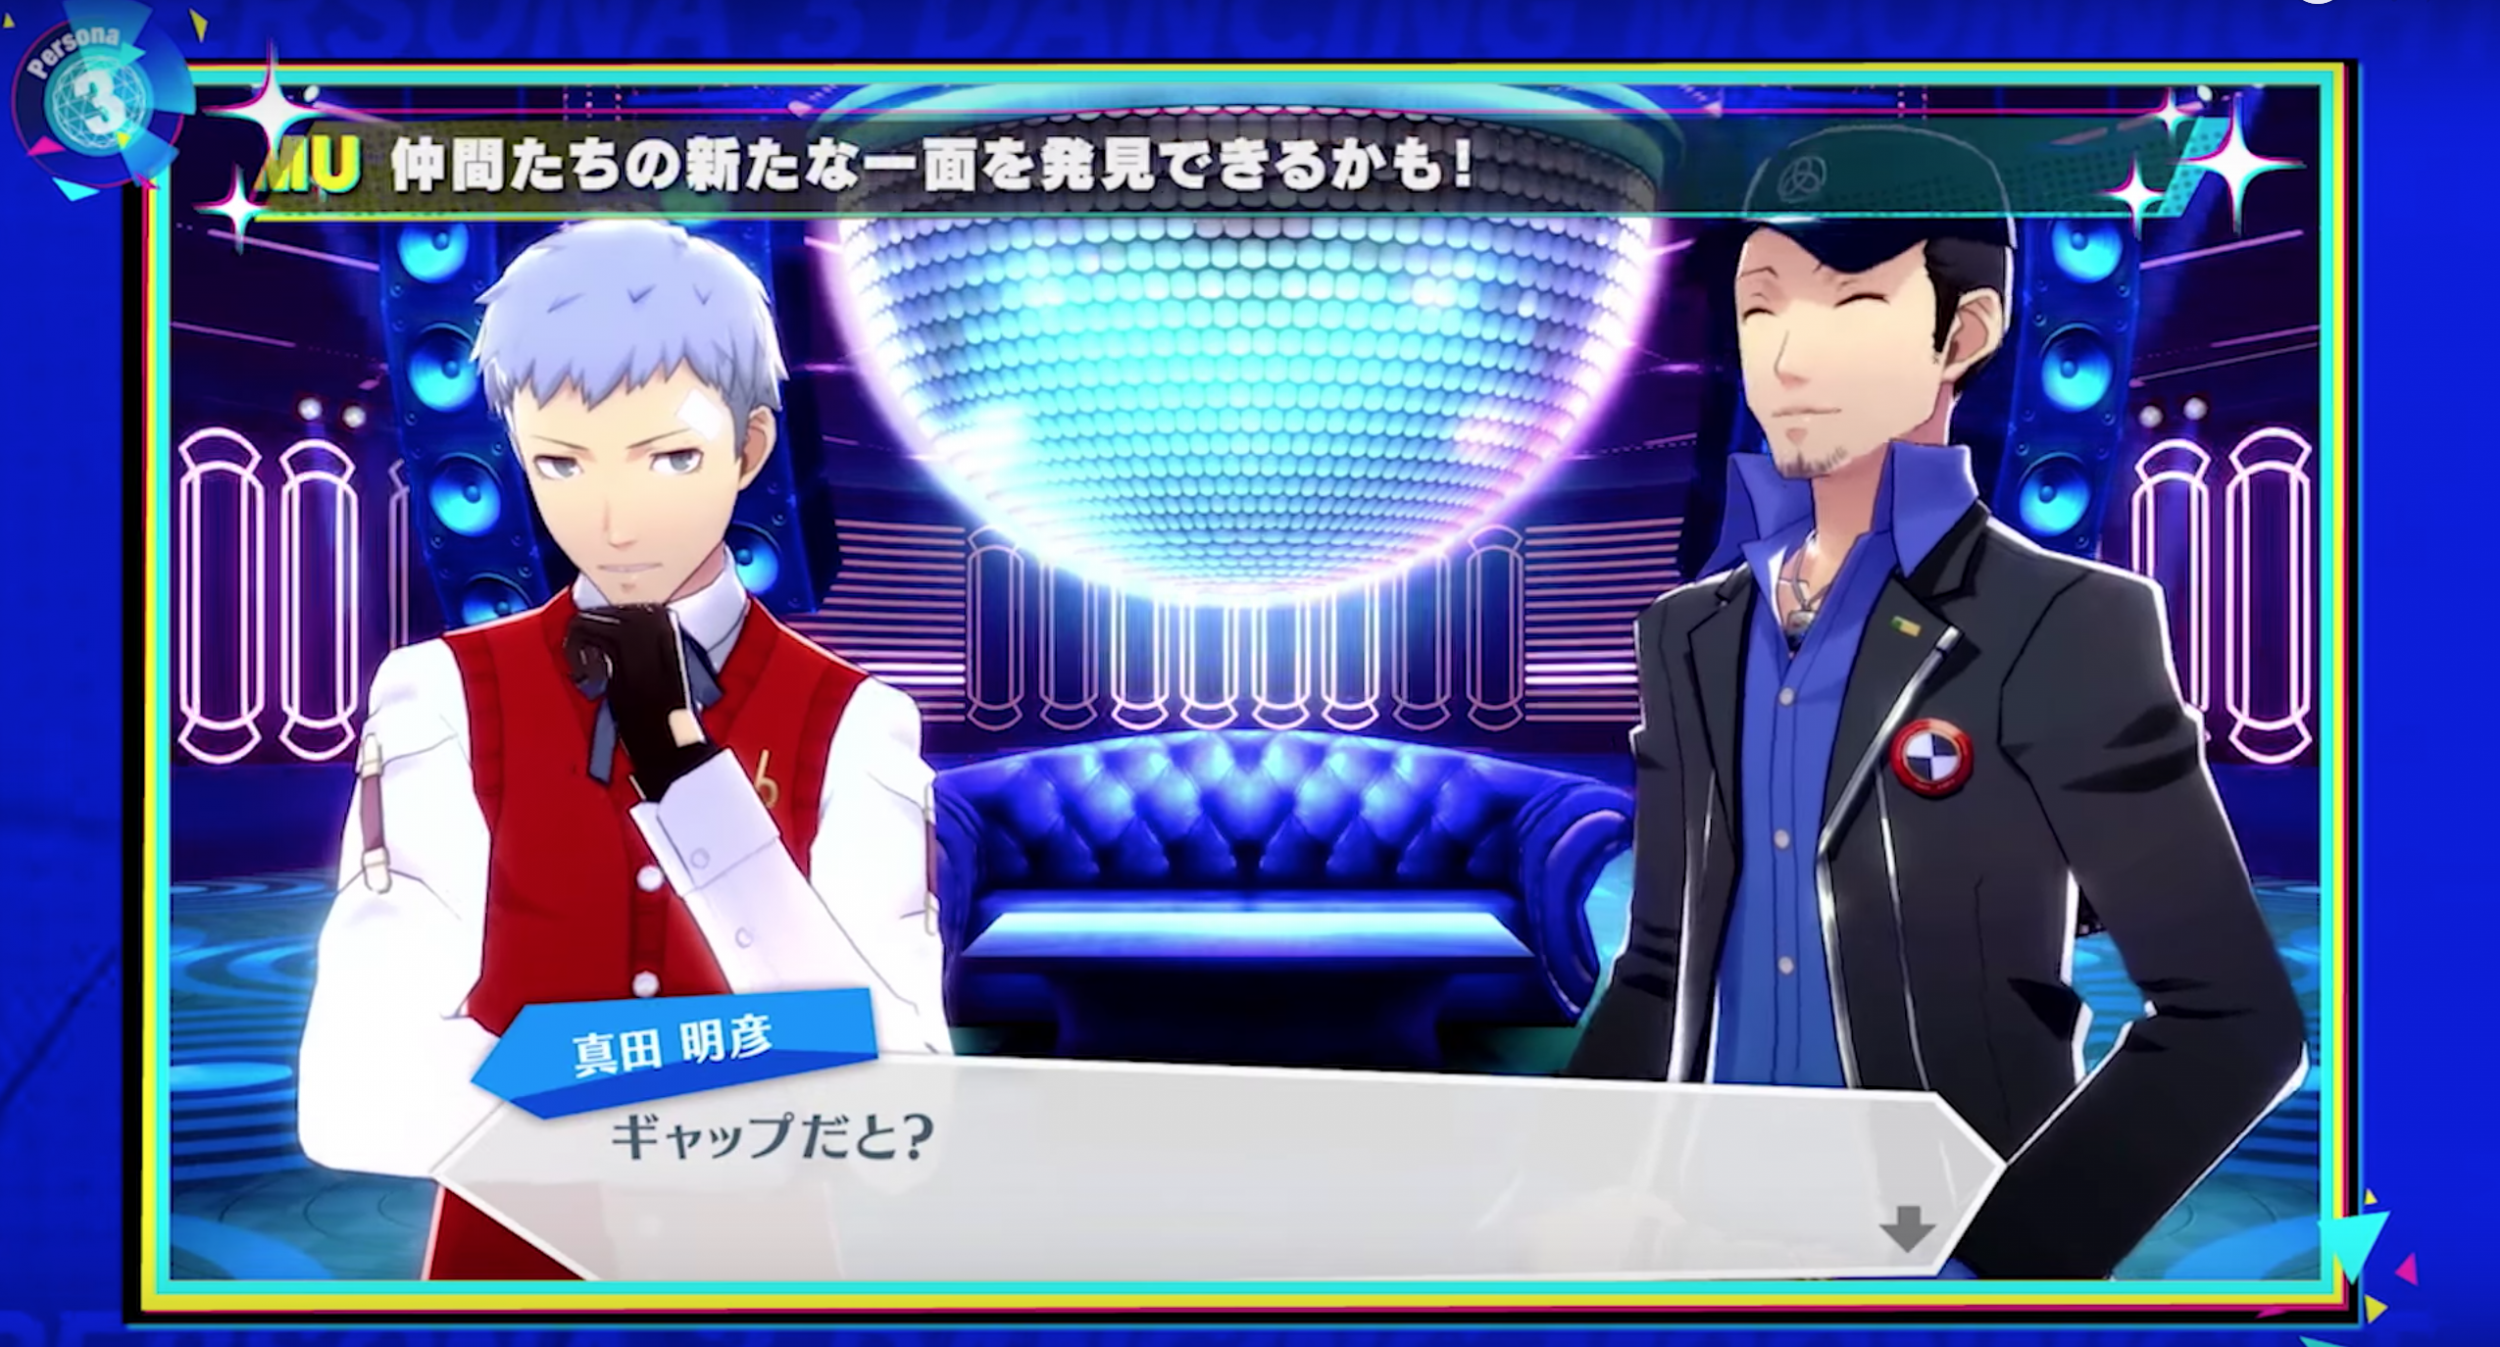 Persona' Dancing Games Make Us Crave a 'Persona 3' Remake